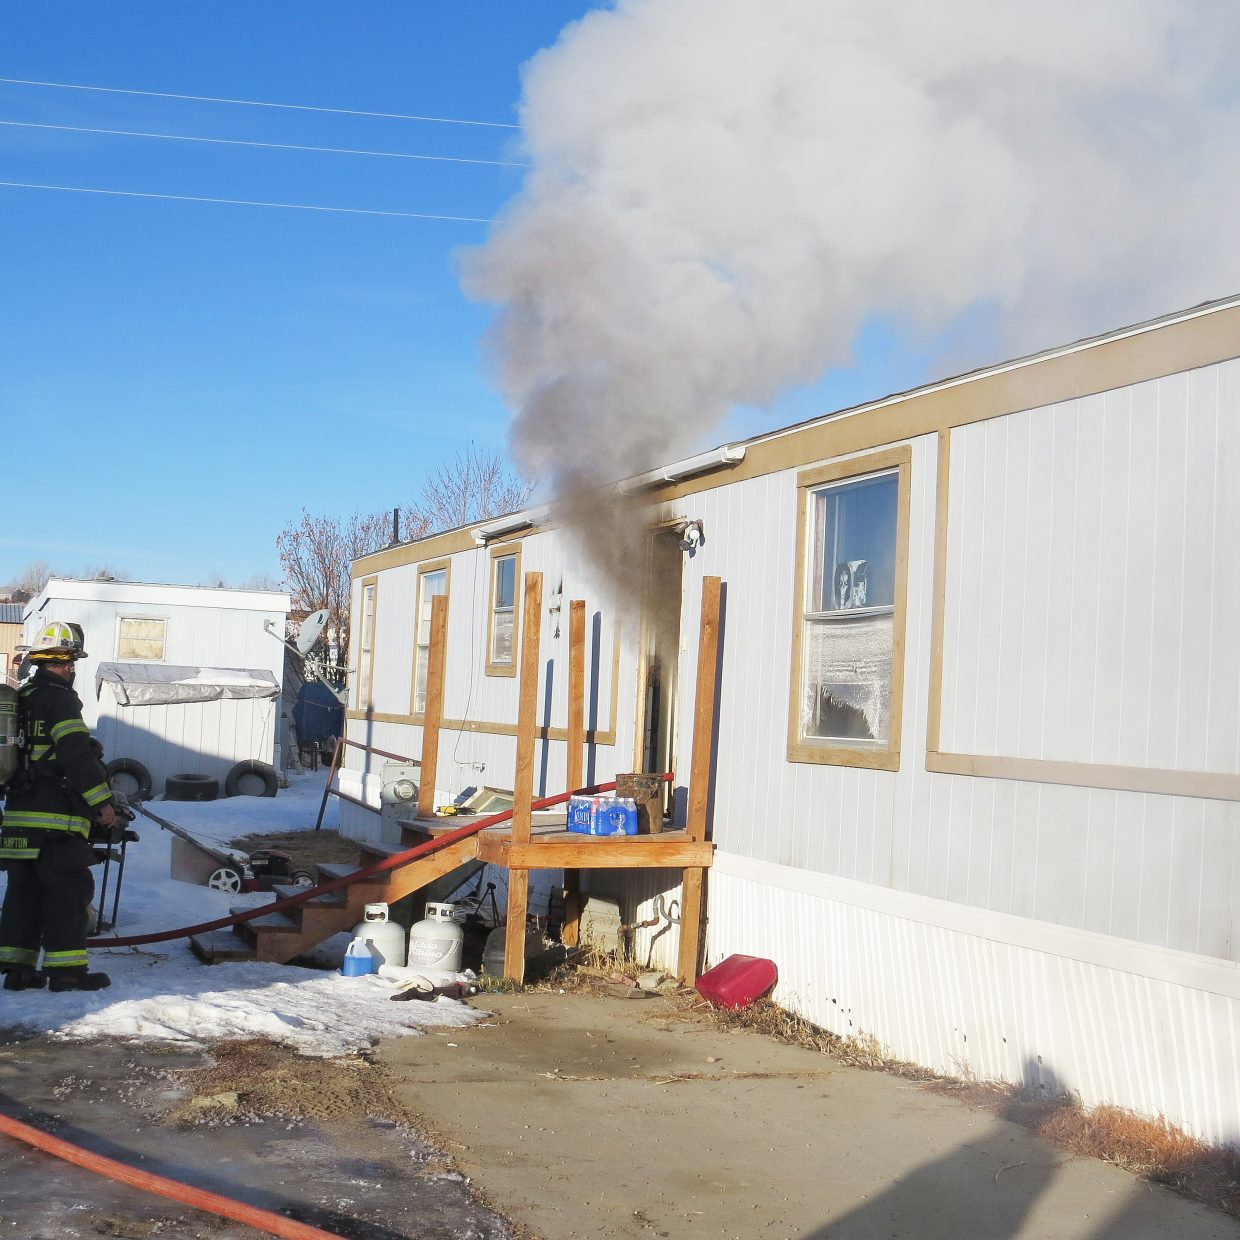 Craig Fire/Rescue responded to a structure fire in the 2200 block of Third Street on Thursday morning. Battalion Chief Troy Hampton said after the initial investigation, it's believed a small electrical appliance or faulty electrical wiring in the kitchen started the fire.